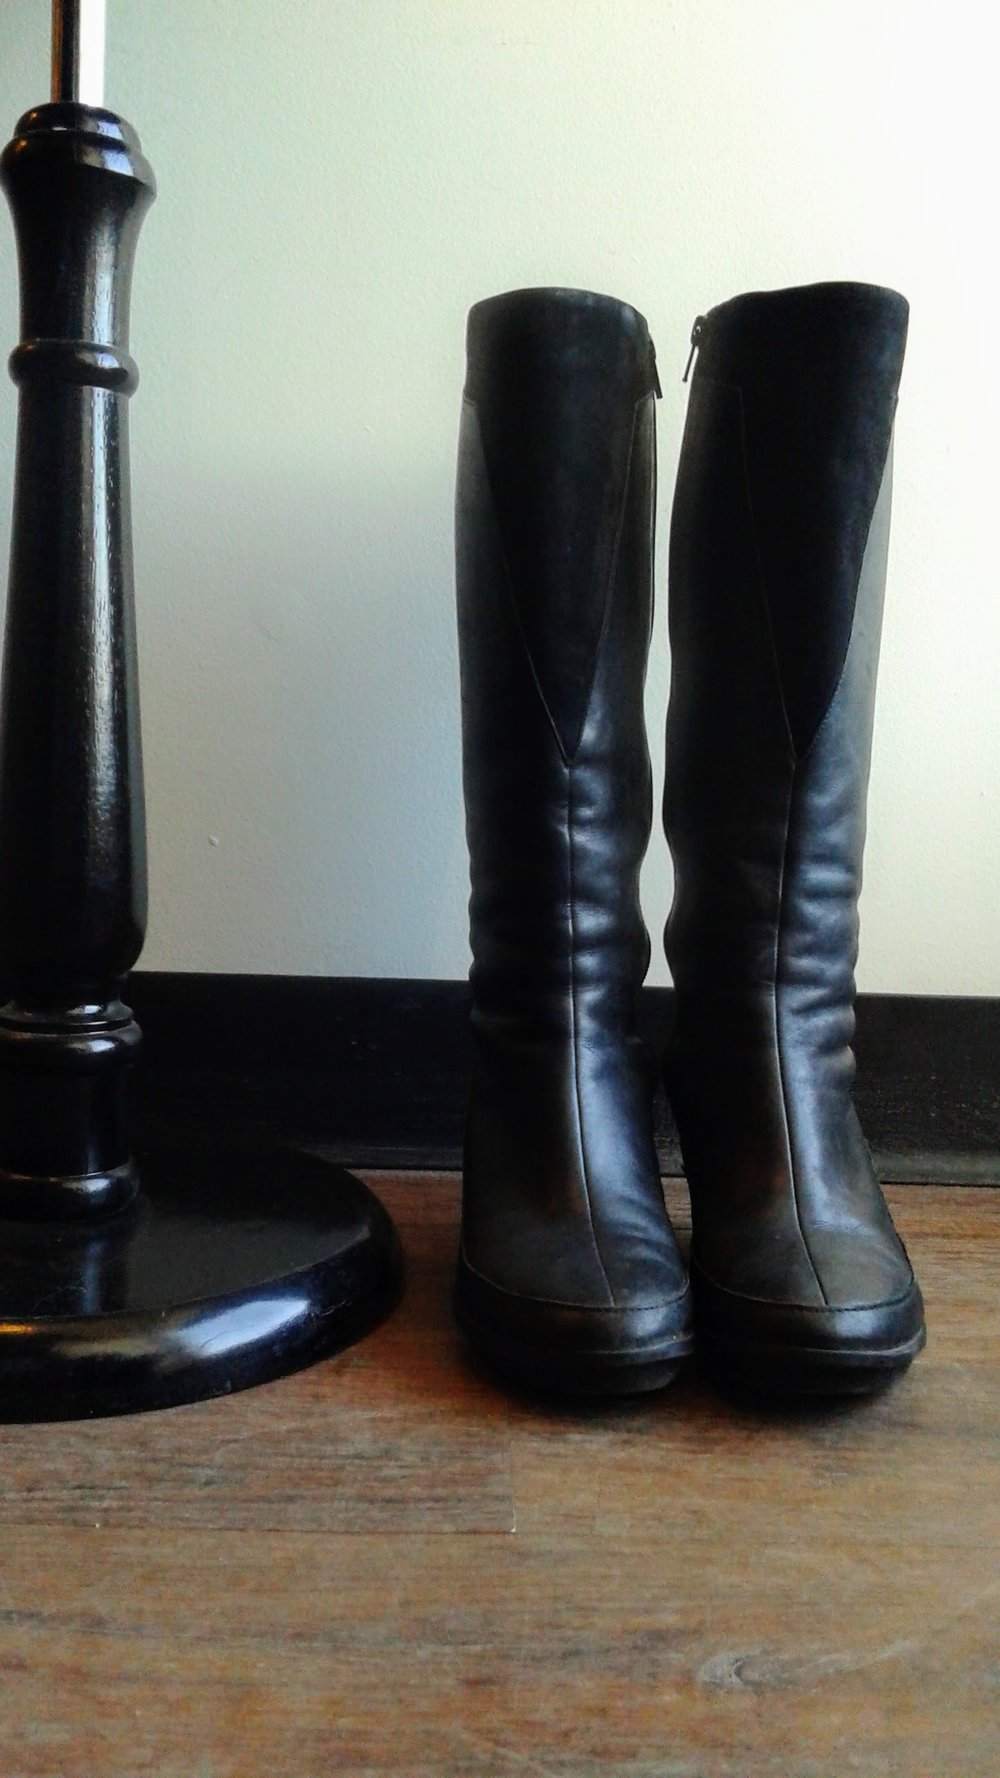 Camper boots; S7, $68